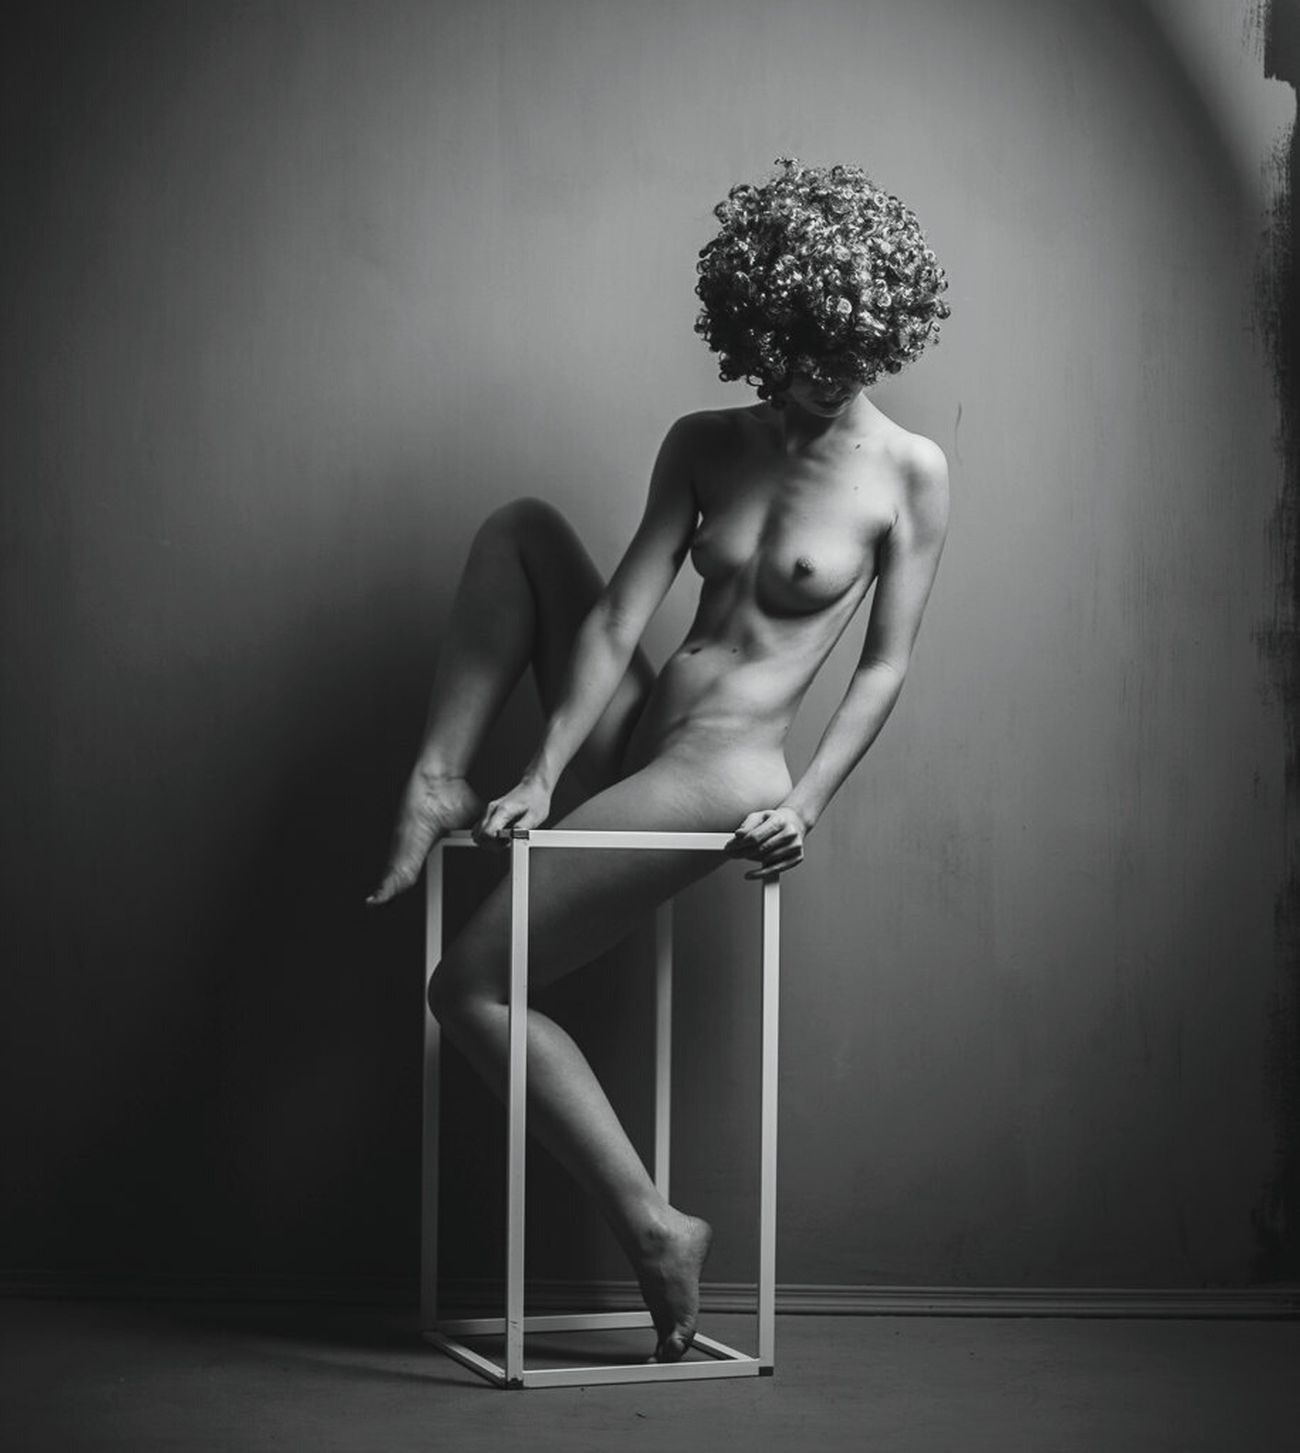 Beauty Loneliness Sitting One Woman Only Depression - Sadness Nüde Art. Nu Studiophotography Nude_ Not_porn One Young Woman Only Nude_body Nudephotosession Nudeartistic Abstract Art Human Leg Nude_model Body Part Nudeartphotography Nudelife Nudeblackandwhite Studio Shot Human Skin Gray Background Naked_art Nude-Art